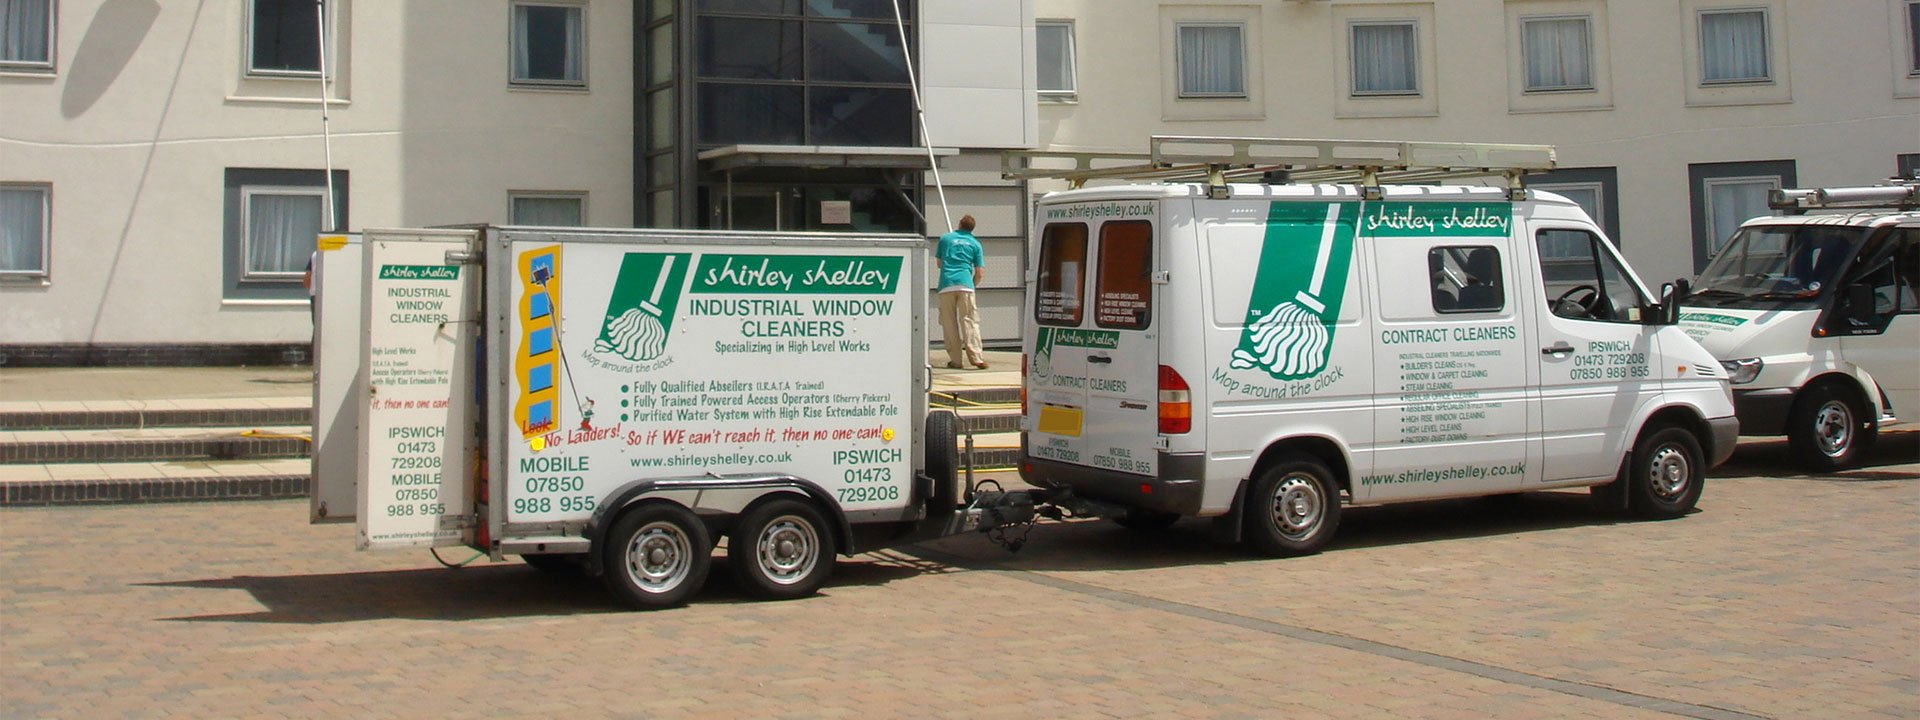 wash and reach window cleaning